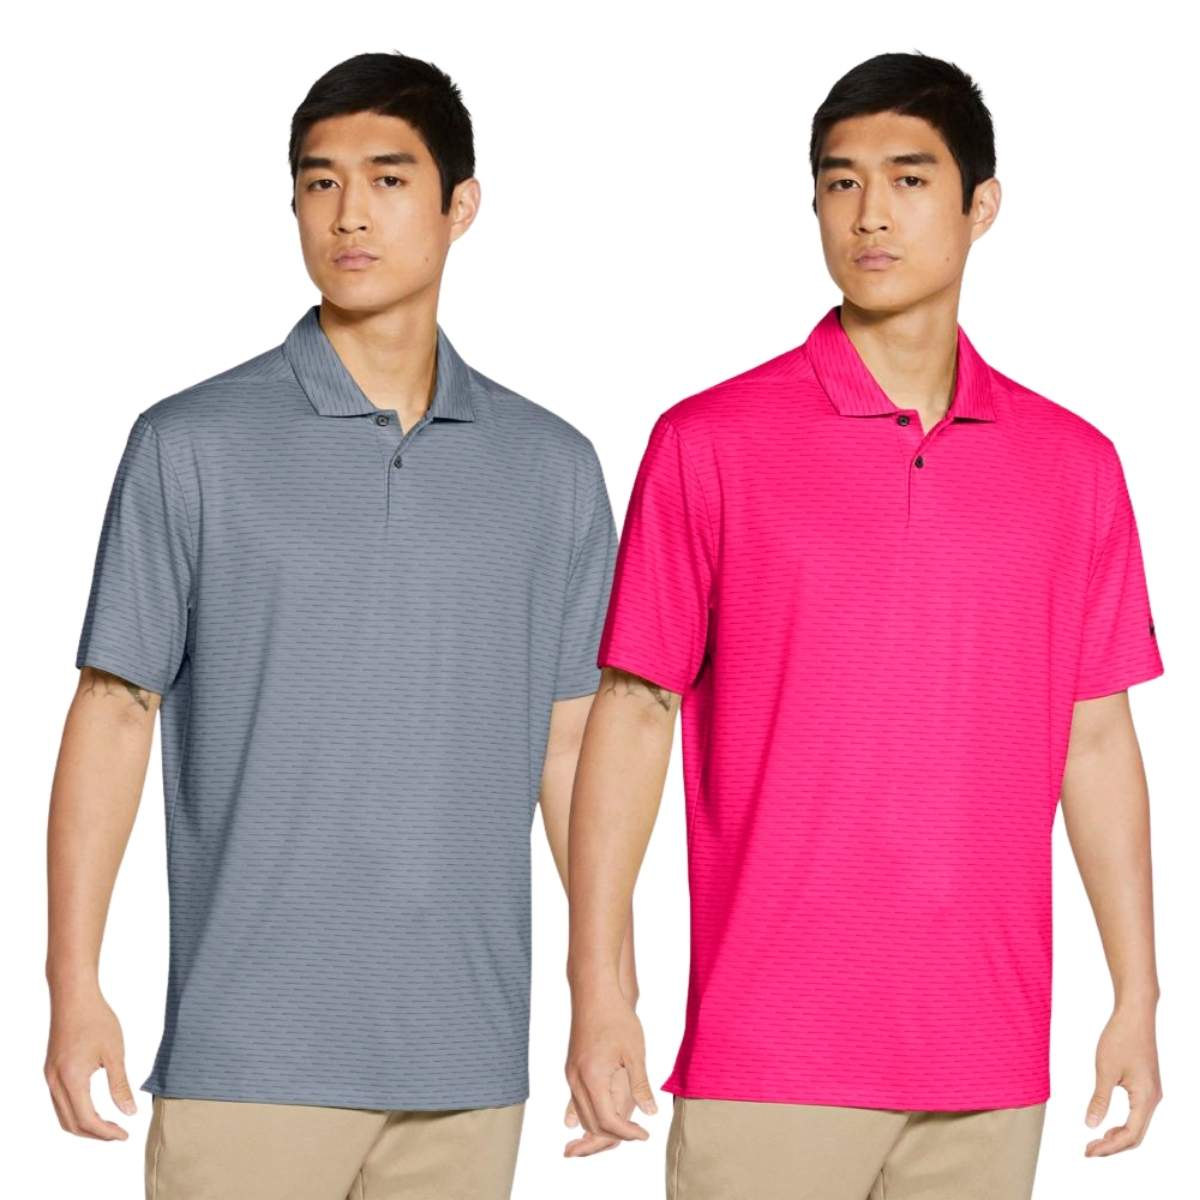 Nike Men's 2021 Dri-Fit Vapor Micro Stripe Polo